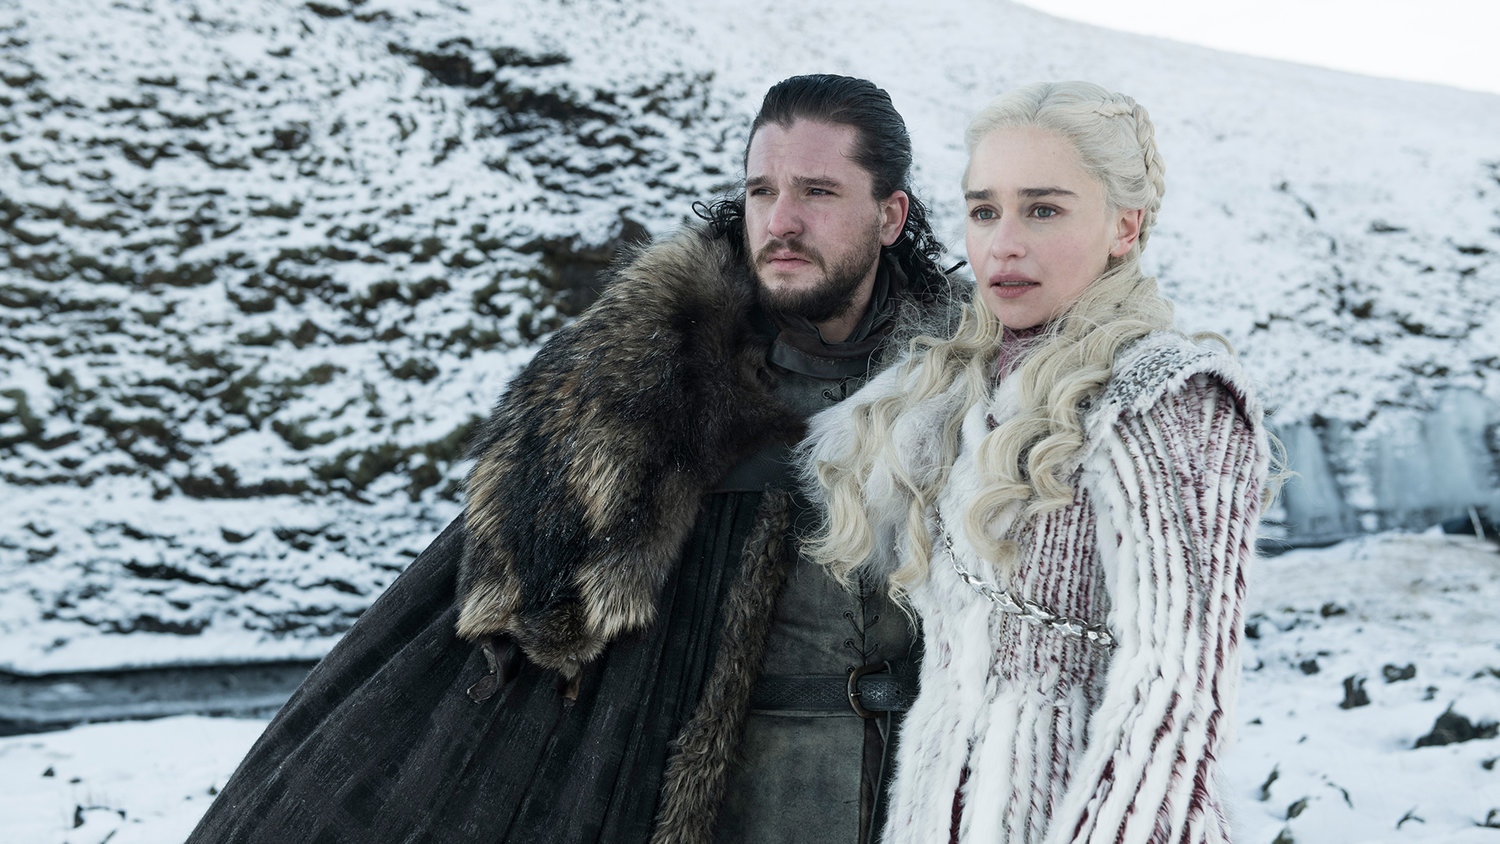 Kit Harington as Jon Snow and Emilia Clarke as Daenerys Targaryen – Photo: Helen Sloan/HBO